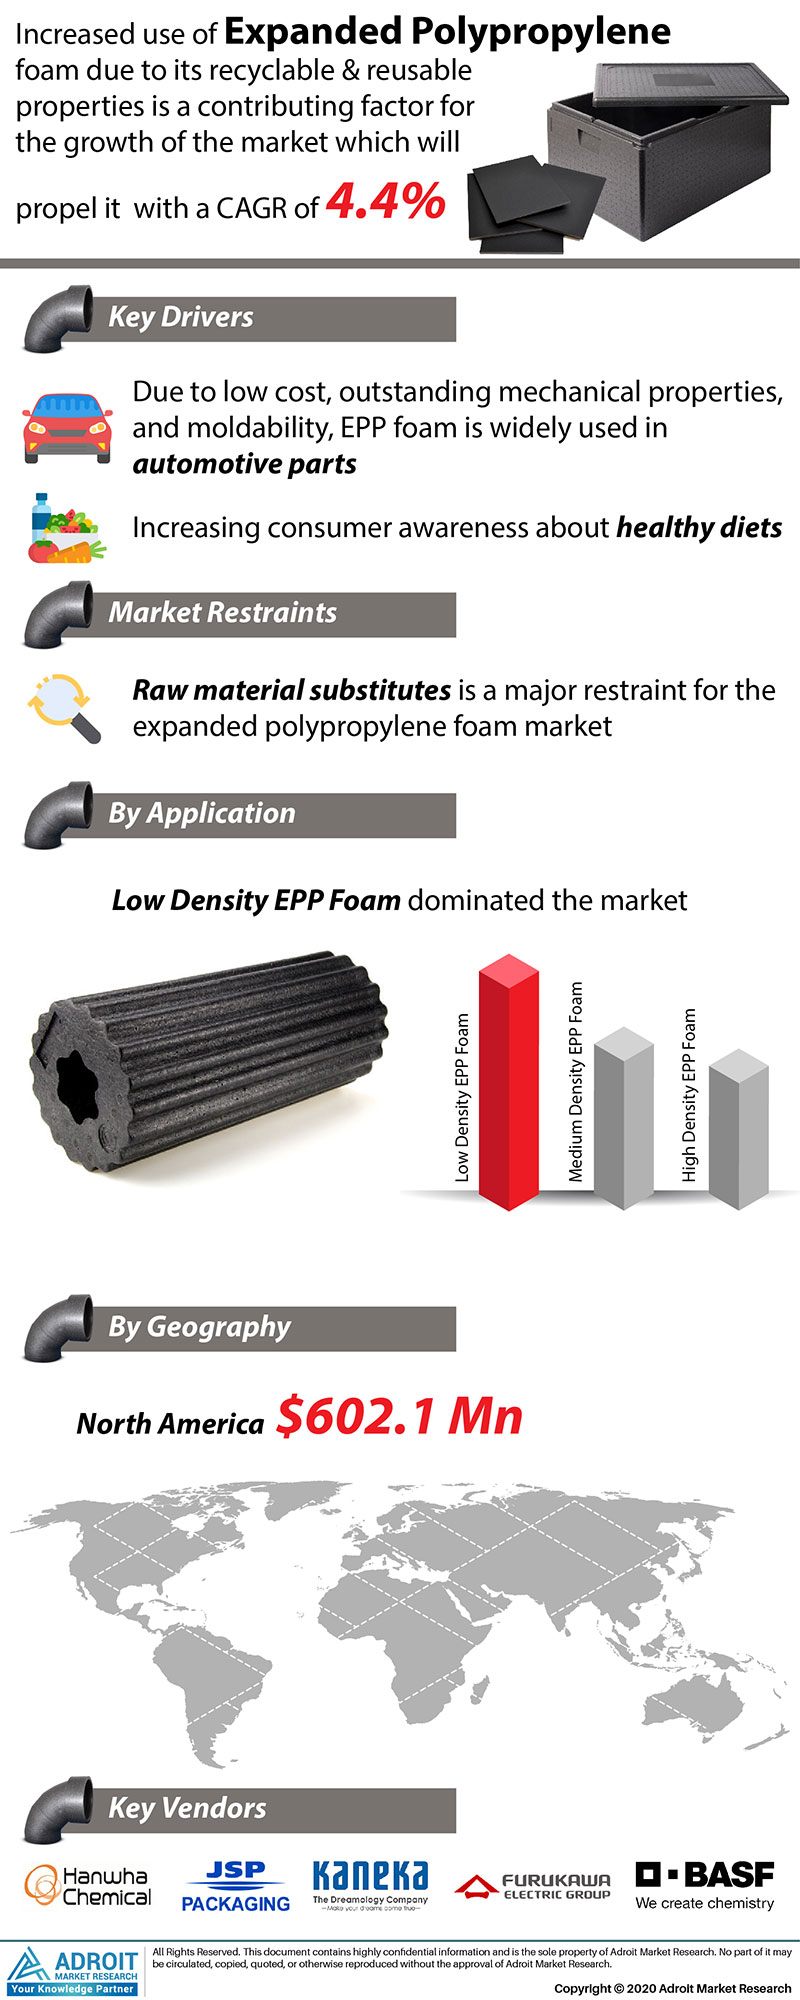 Expanded Polypropylene Foam Market by Material, Application, and Region, Global Forecasts 2018 to 2025